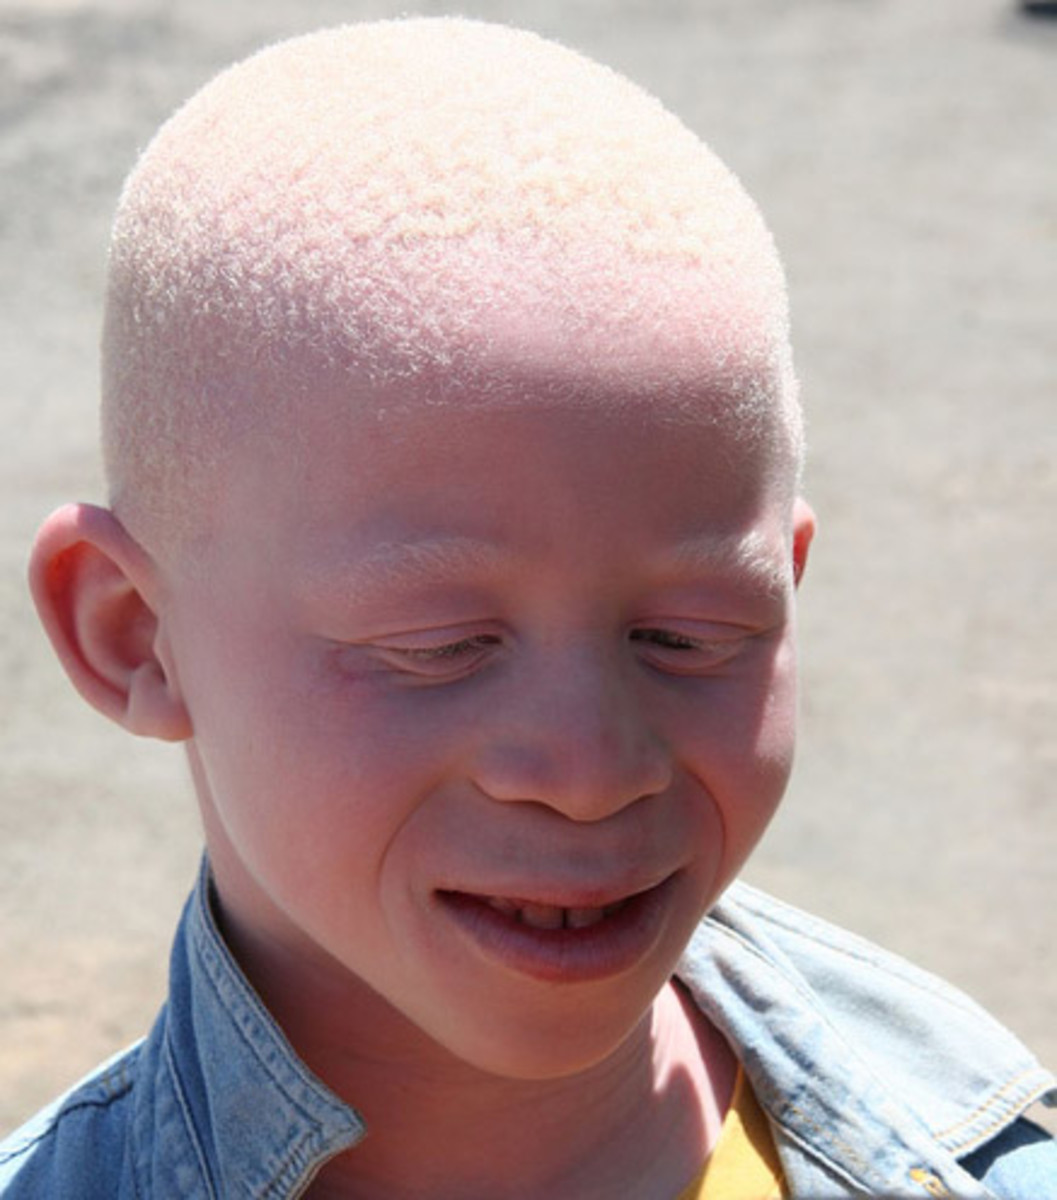 albinism-the-fear-and-threats